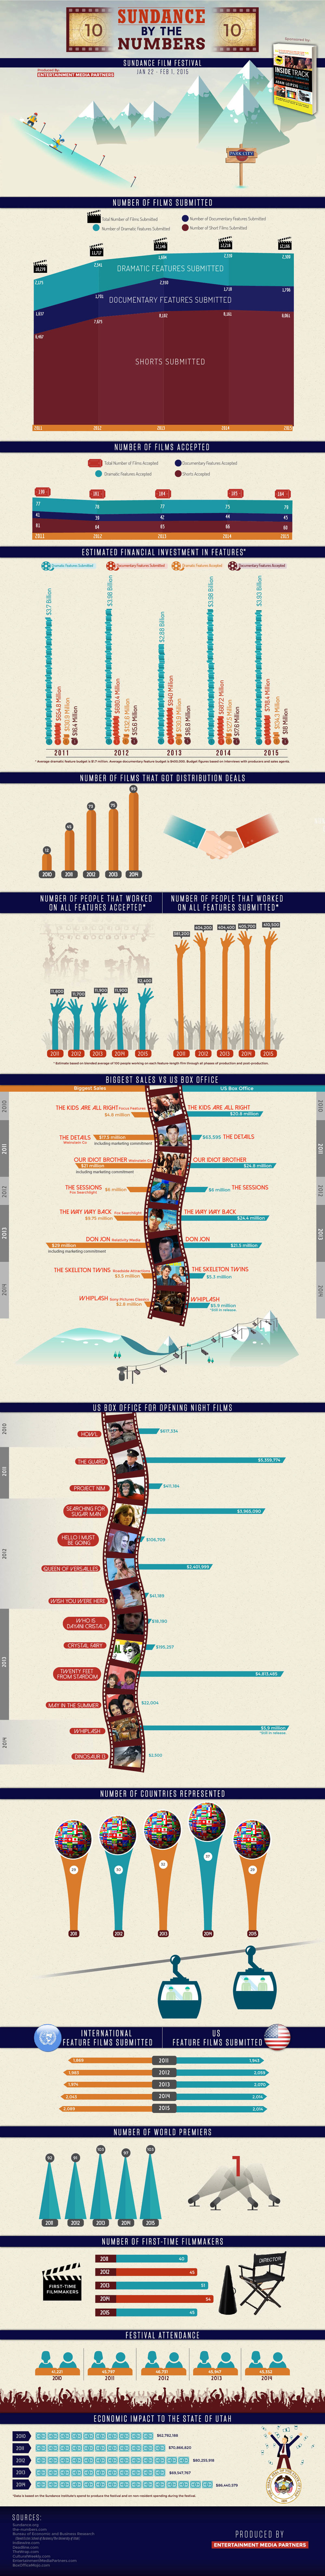 The Sundance Film Festival by the numbers.